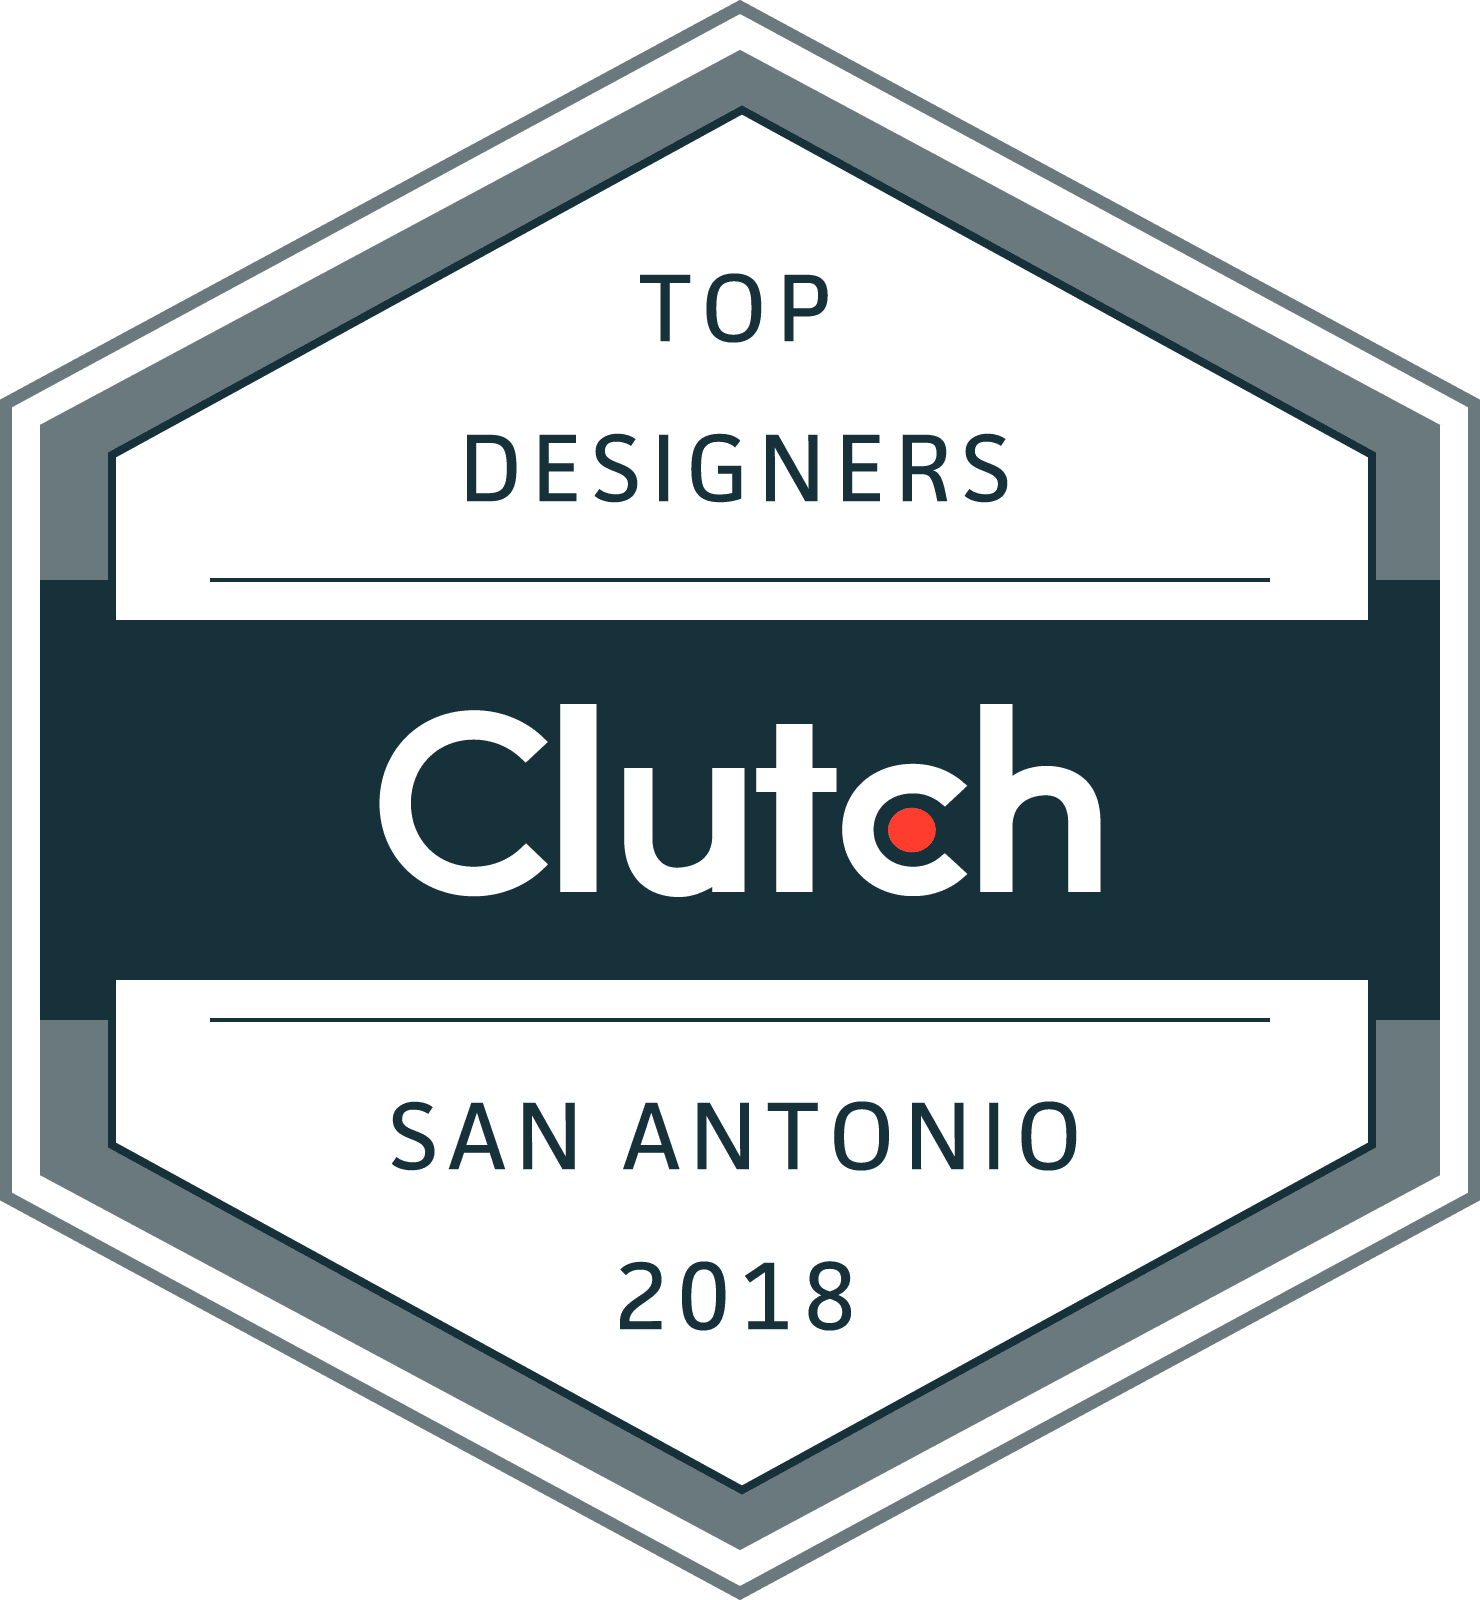 Website Design san antonio website designers san antonio best website designers san antonio cheap website designers san antonio